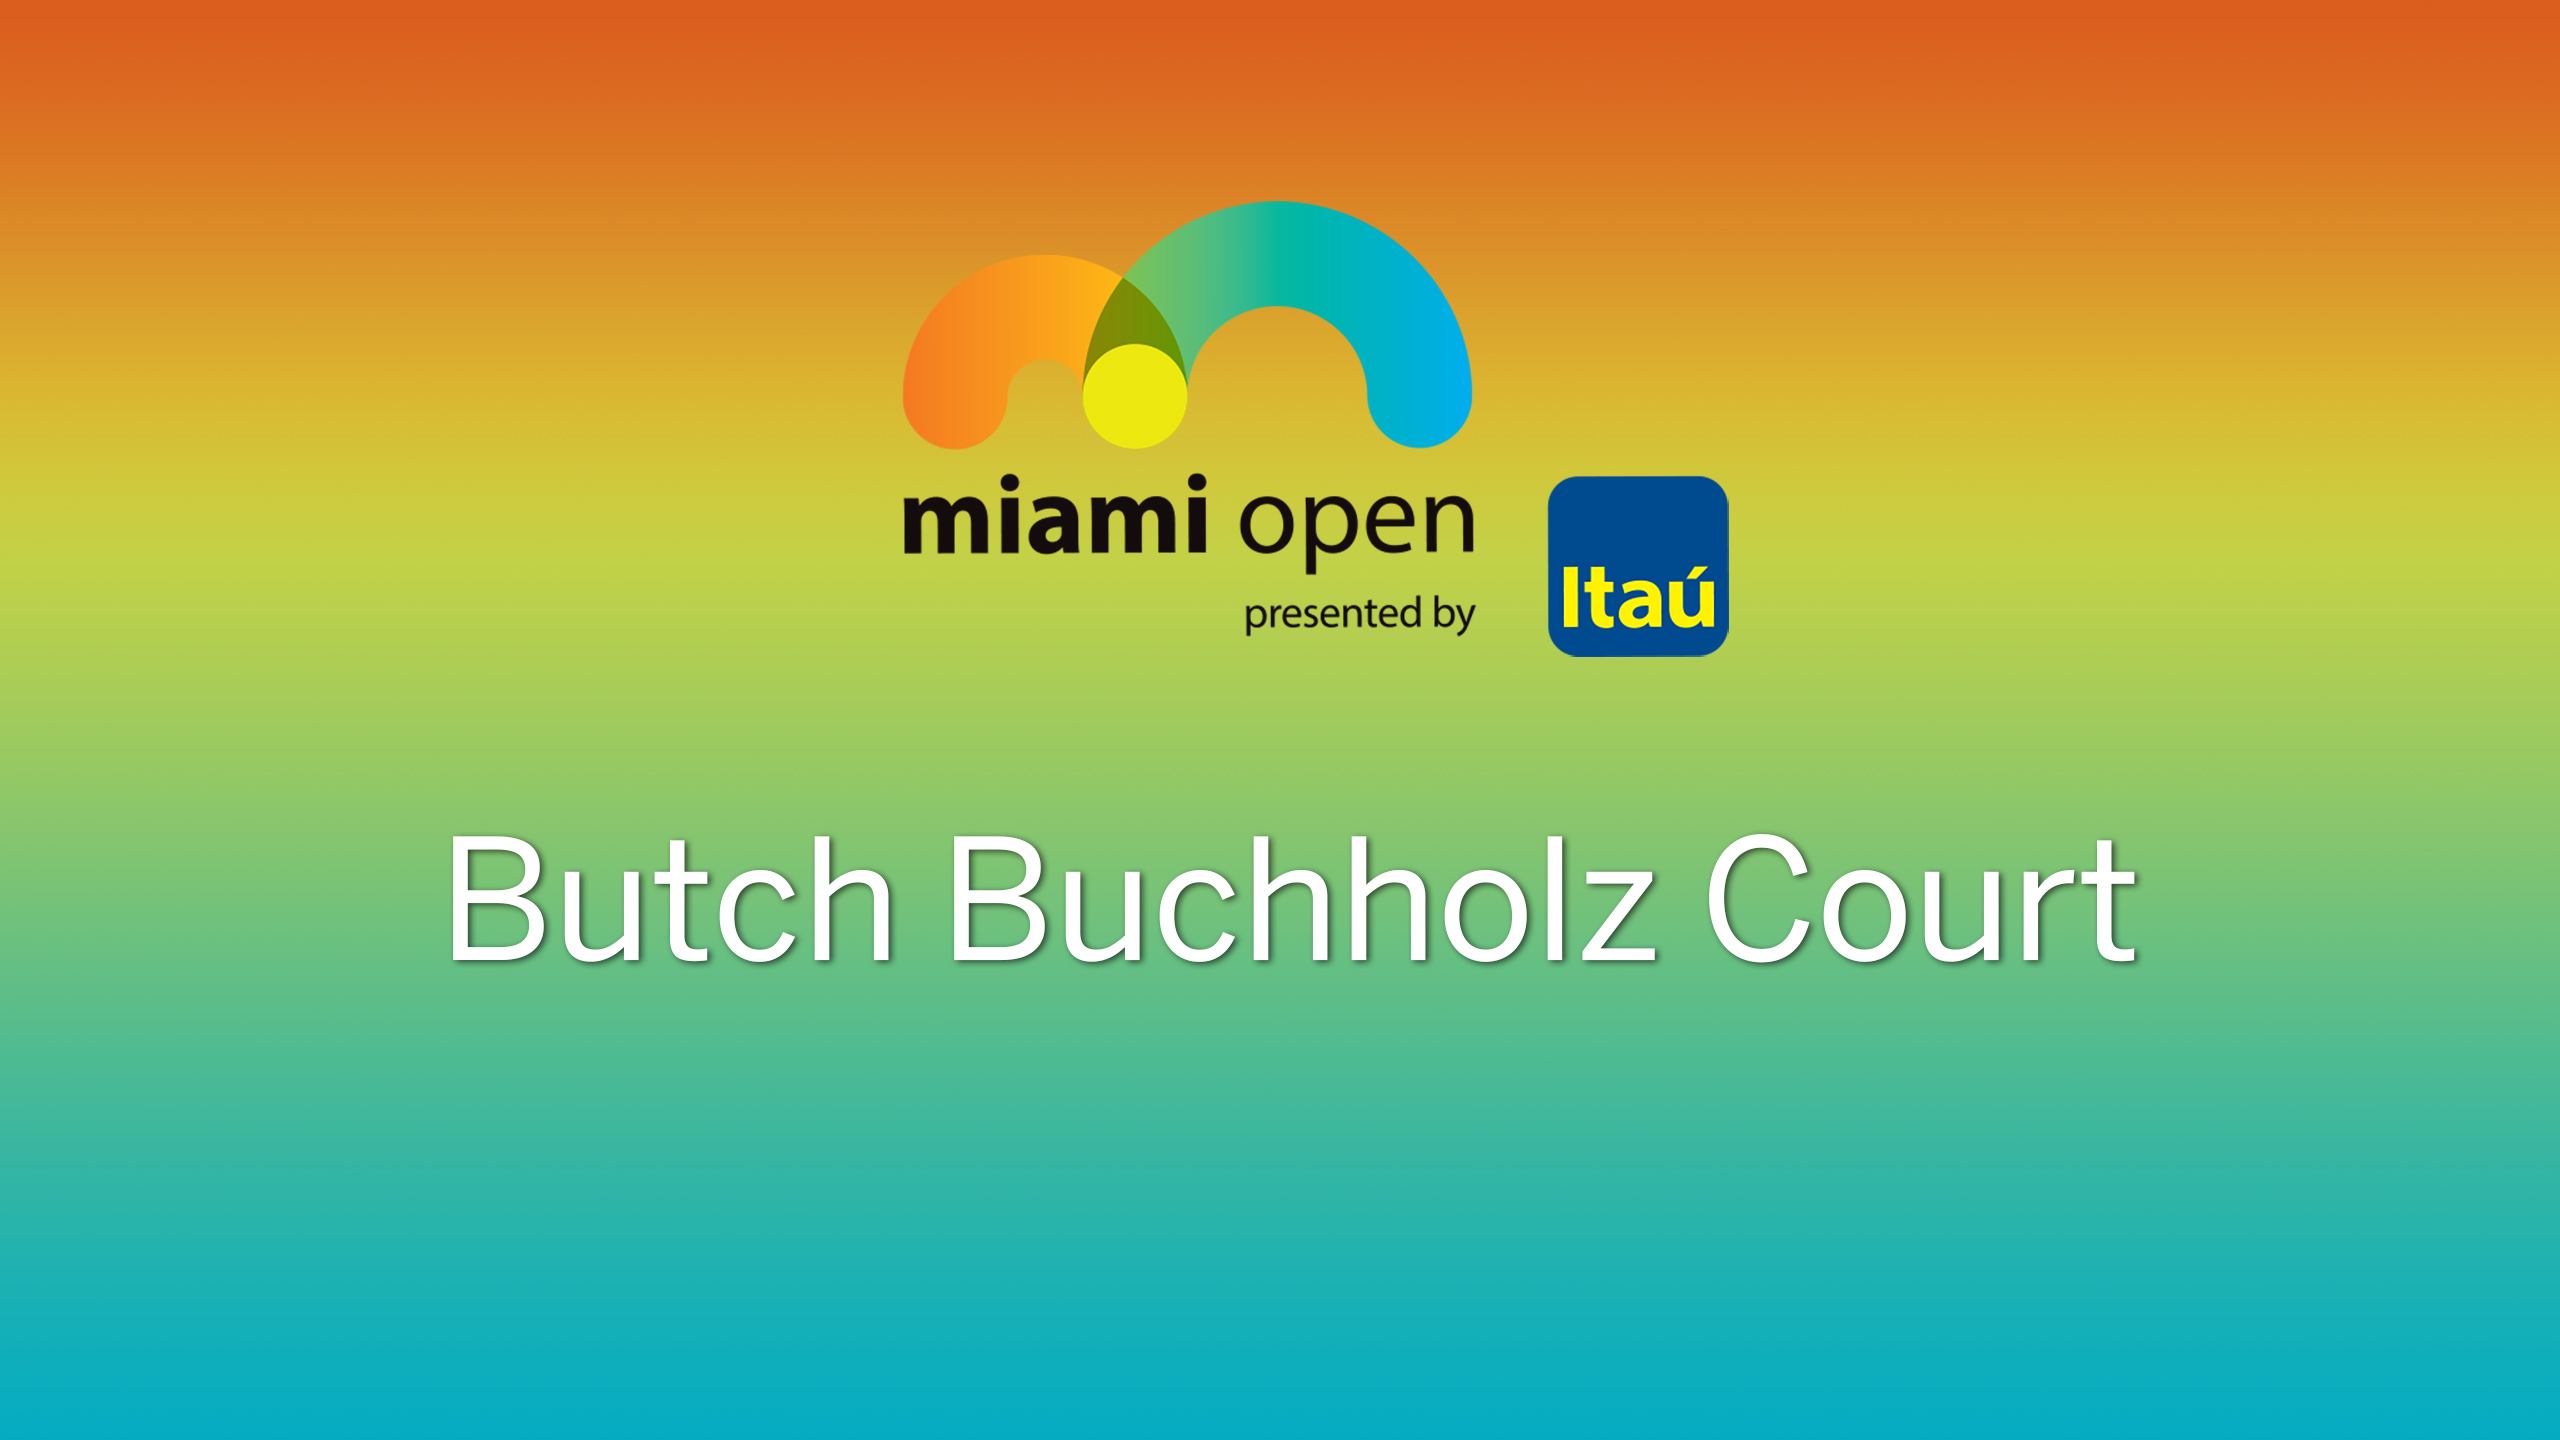 ATP: Butch Buchholz Court - Miami Open